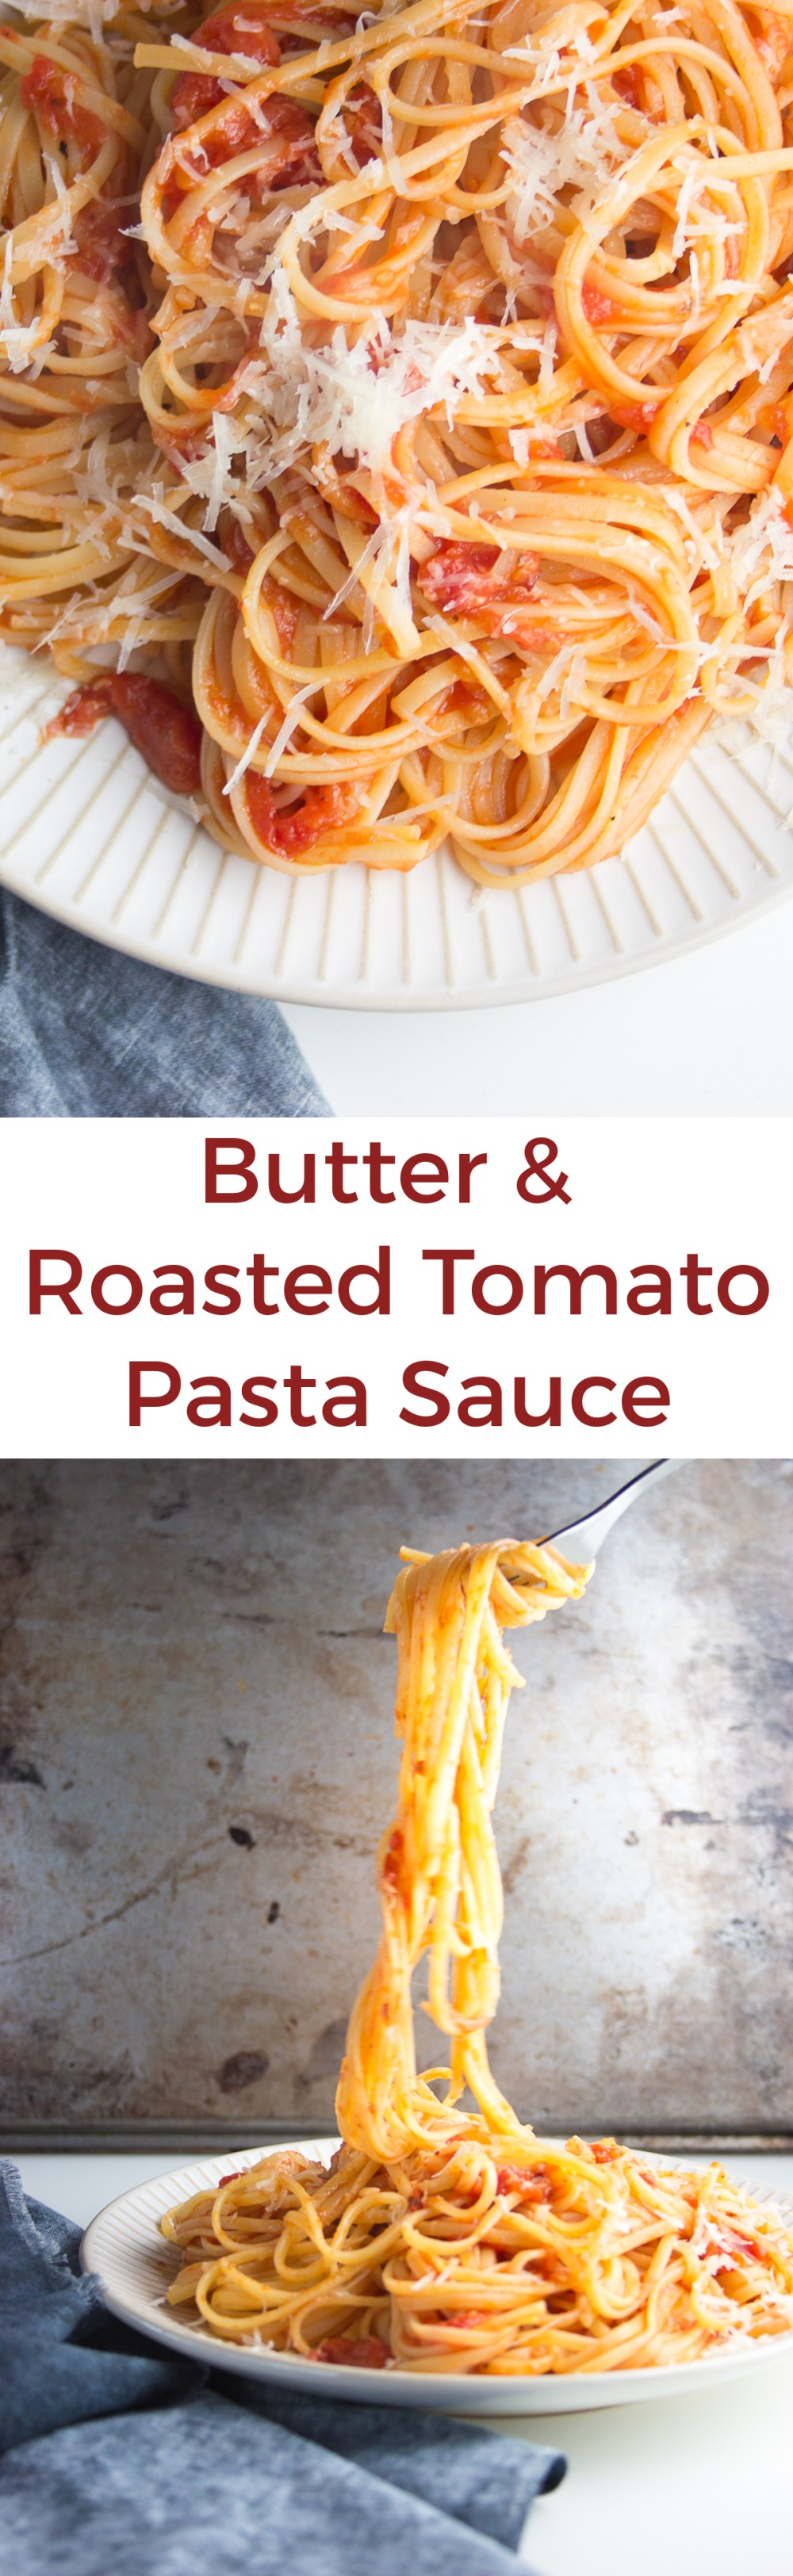 butter & roasted tomato pasta sauce on inthiskitchen.com